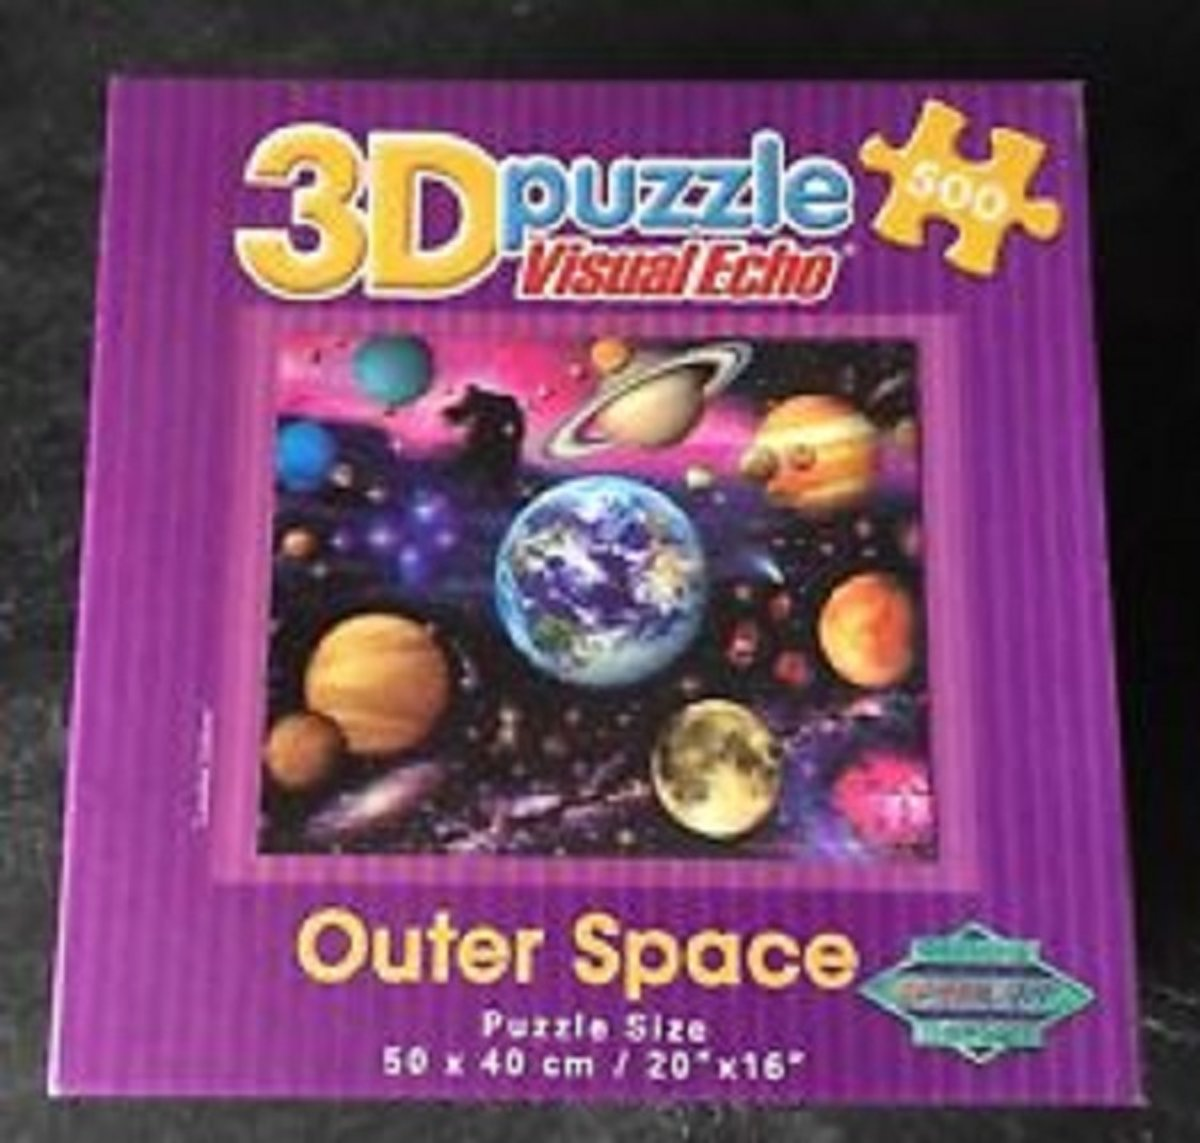 Outer Space 3D puzzel